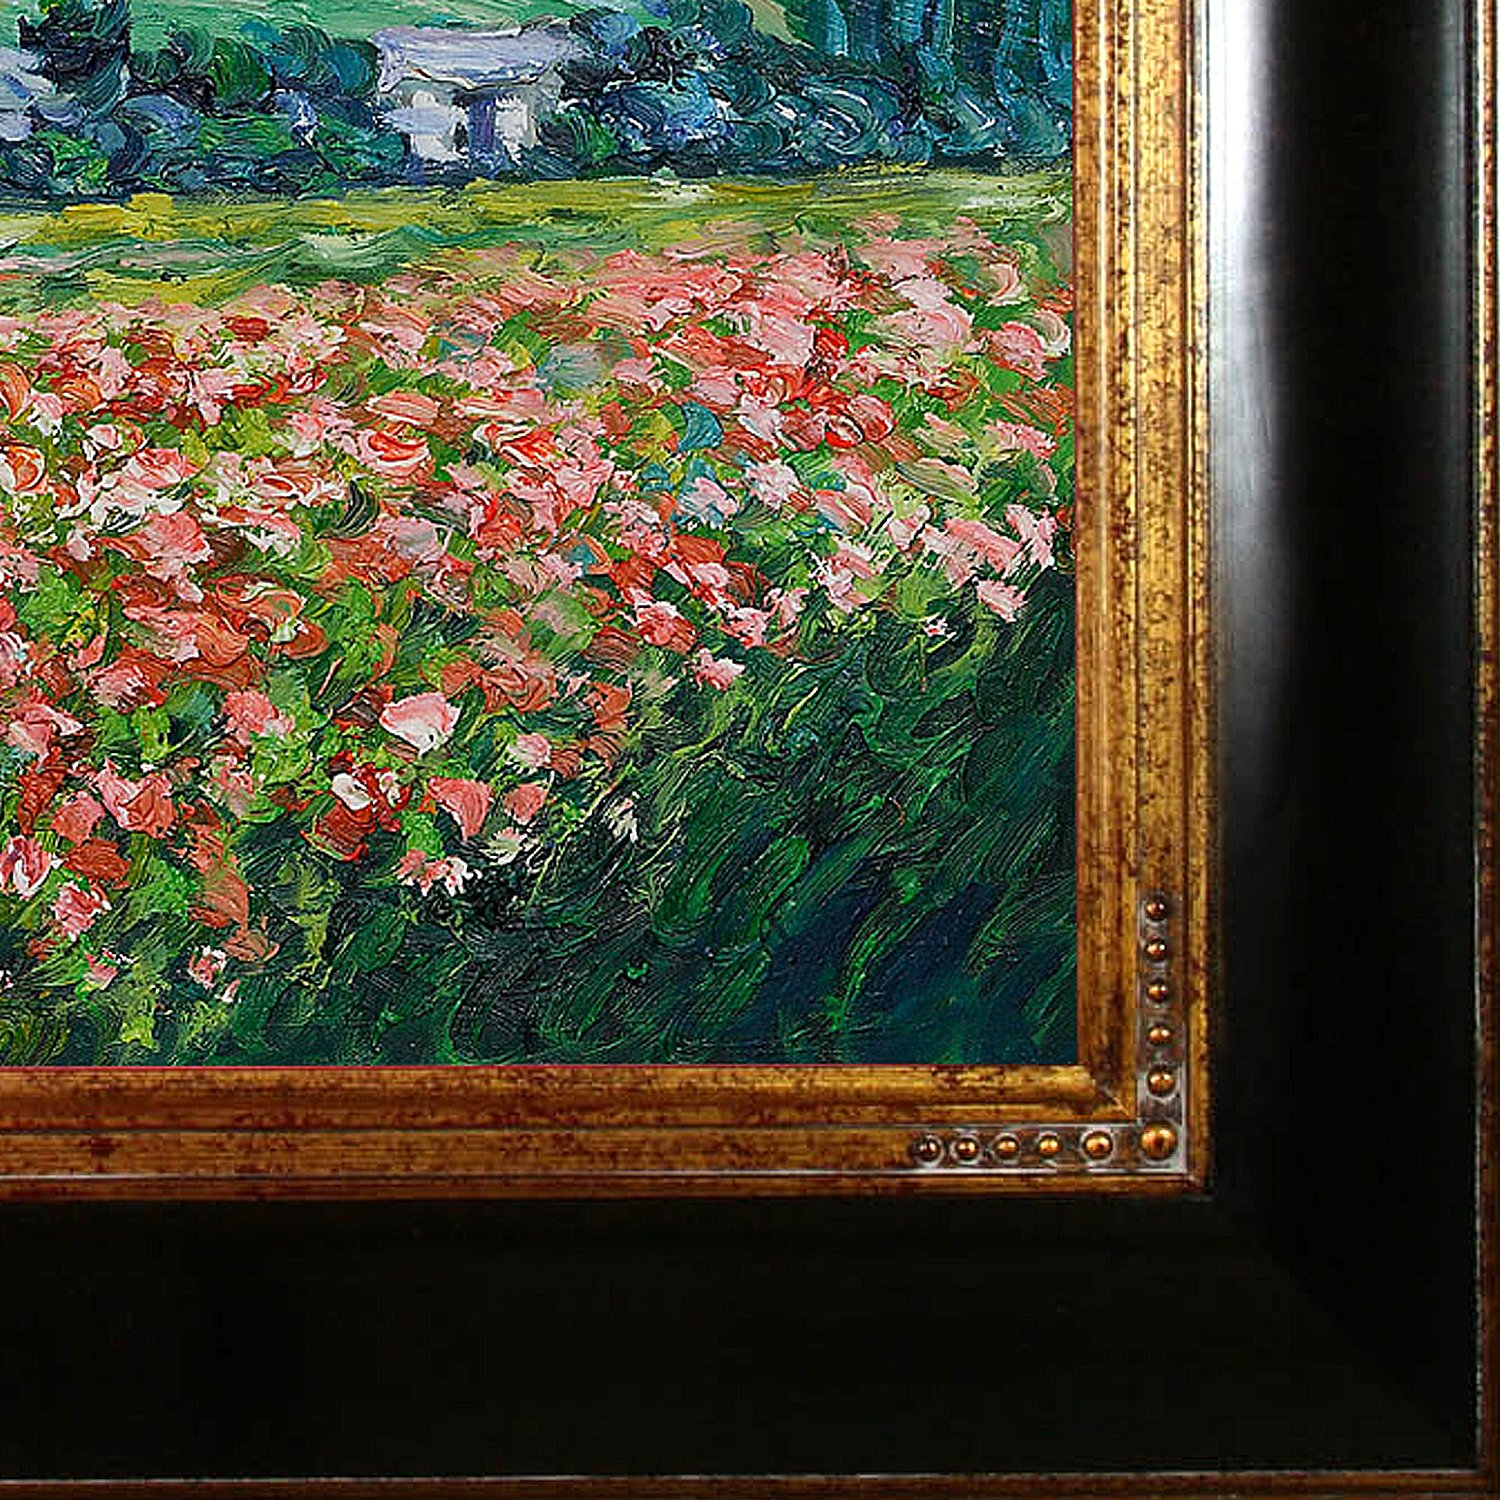 overstockArt Claude Monet Poppy Field near Giverny 20-Inch by 24-Inch Framed Oil on Canvas